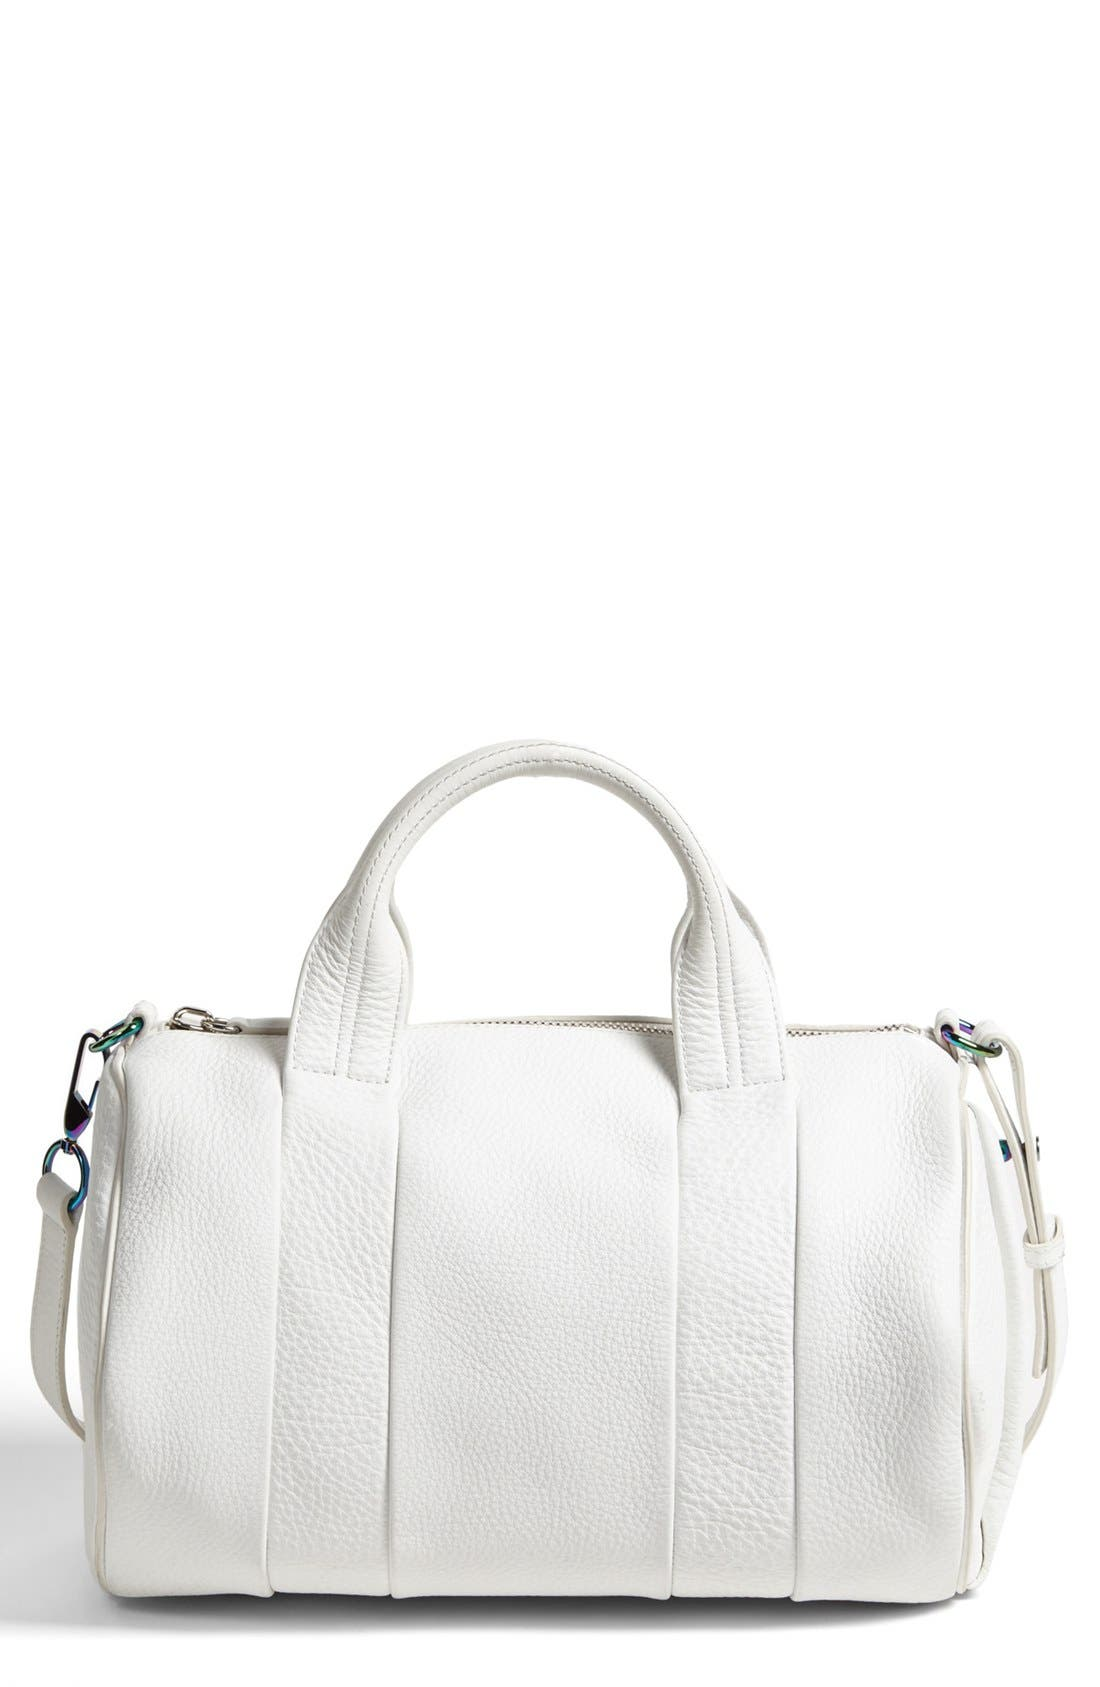 Alternate Image 1 Selected - Alexander Wang 'Rocco - Iridescent' Leather Satchel